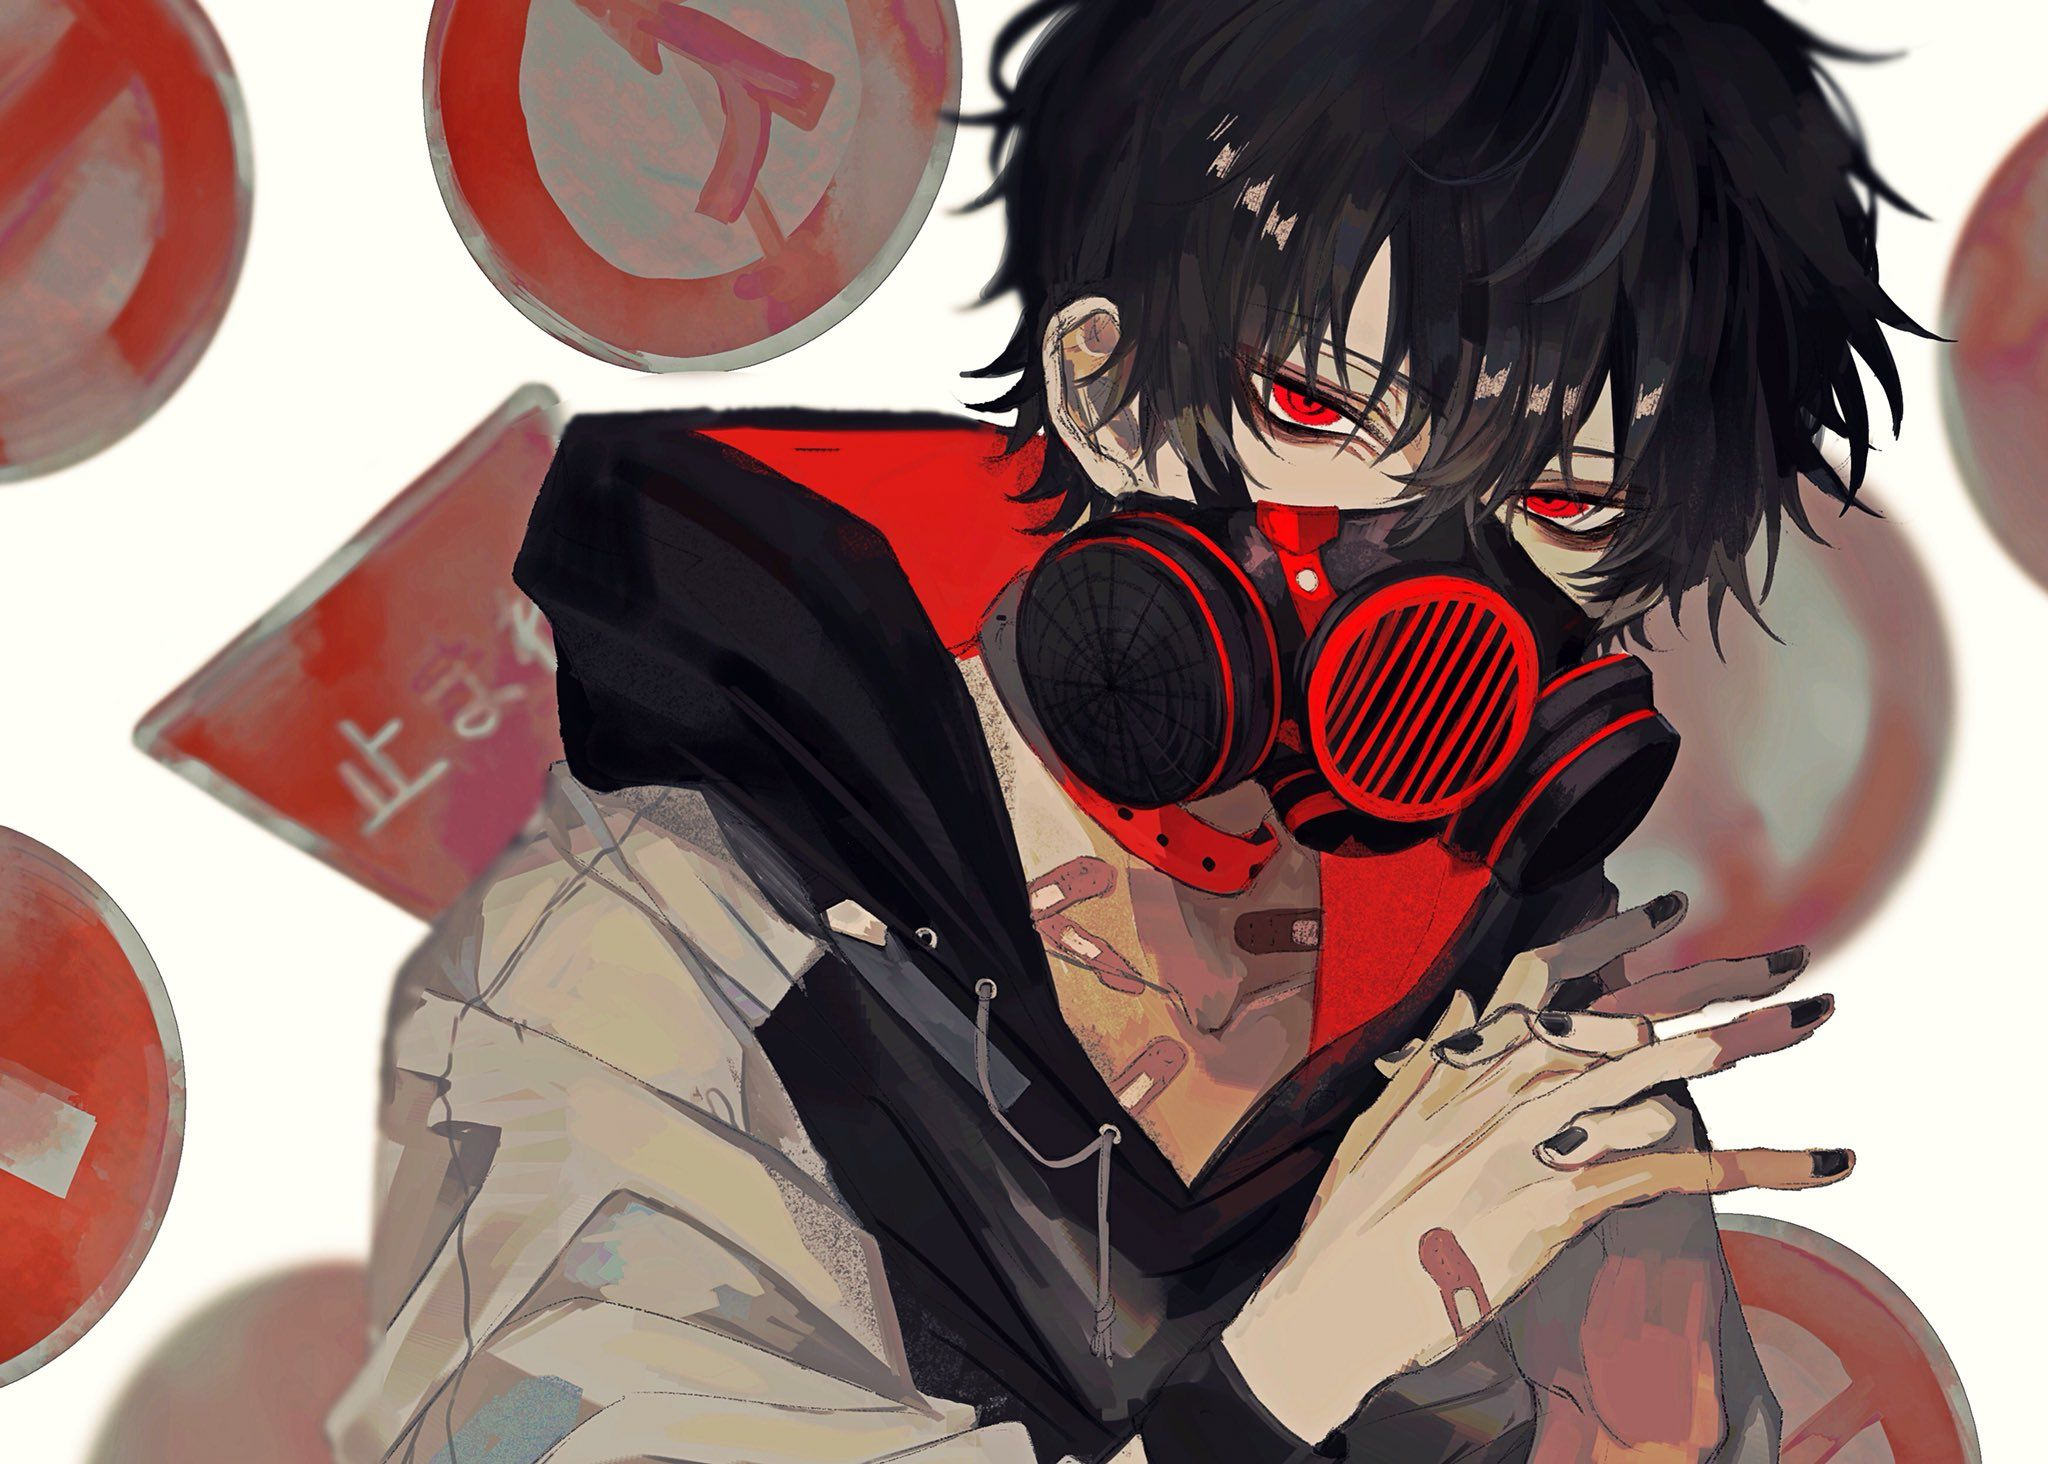 red eyes, road sign, gas masks, hoods, bandage,